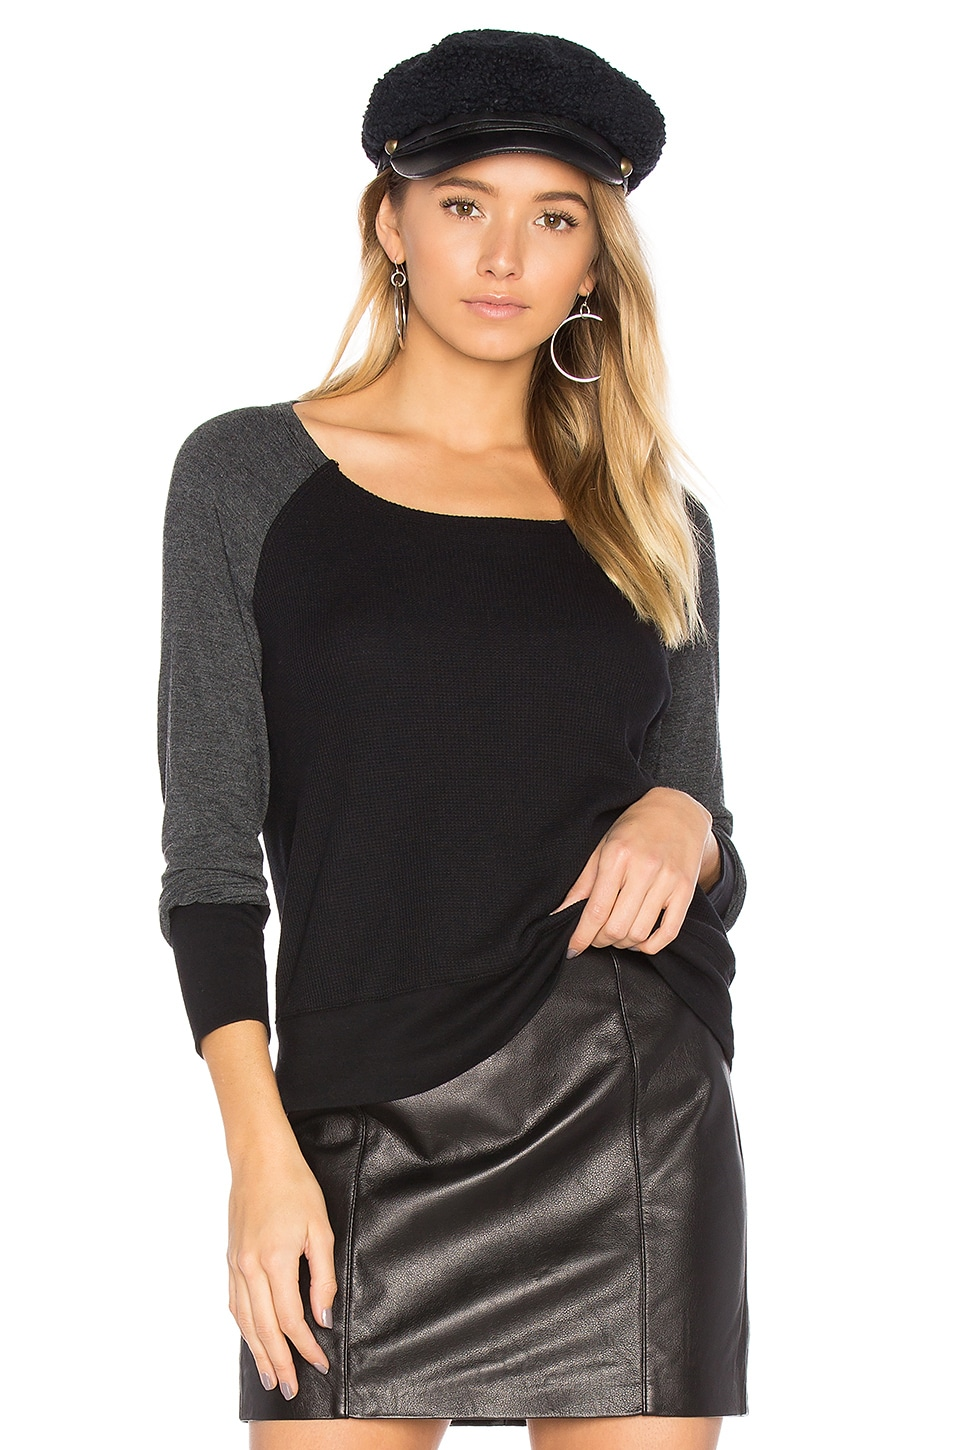 Splendid Thermal Mixed Media Top in Black